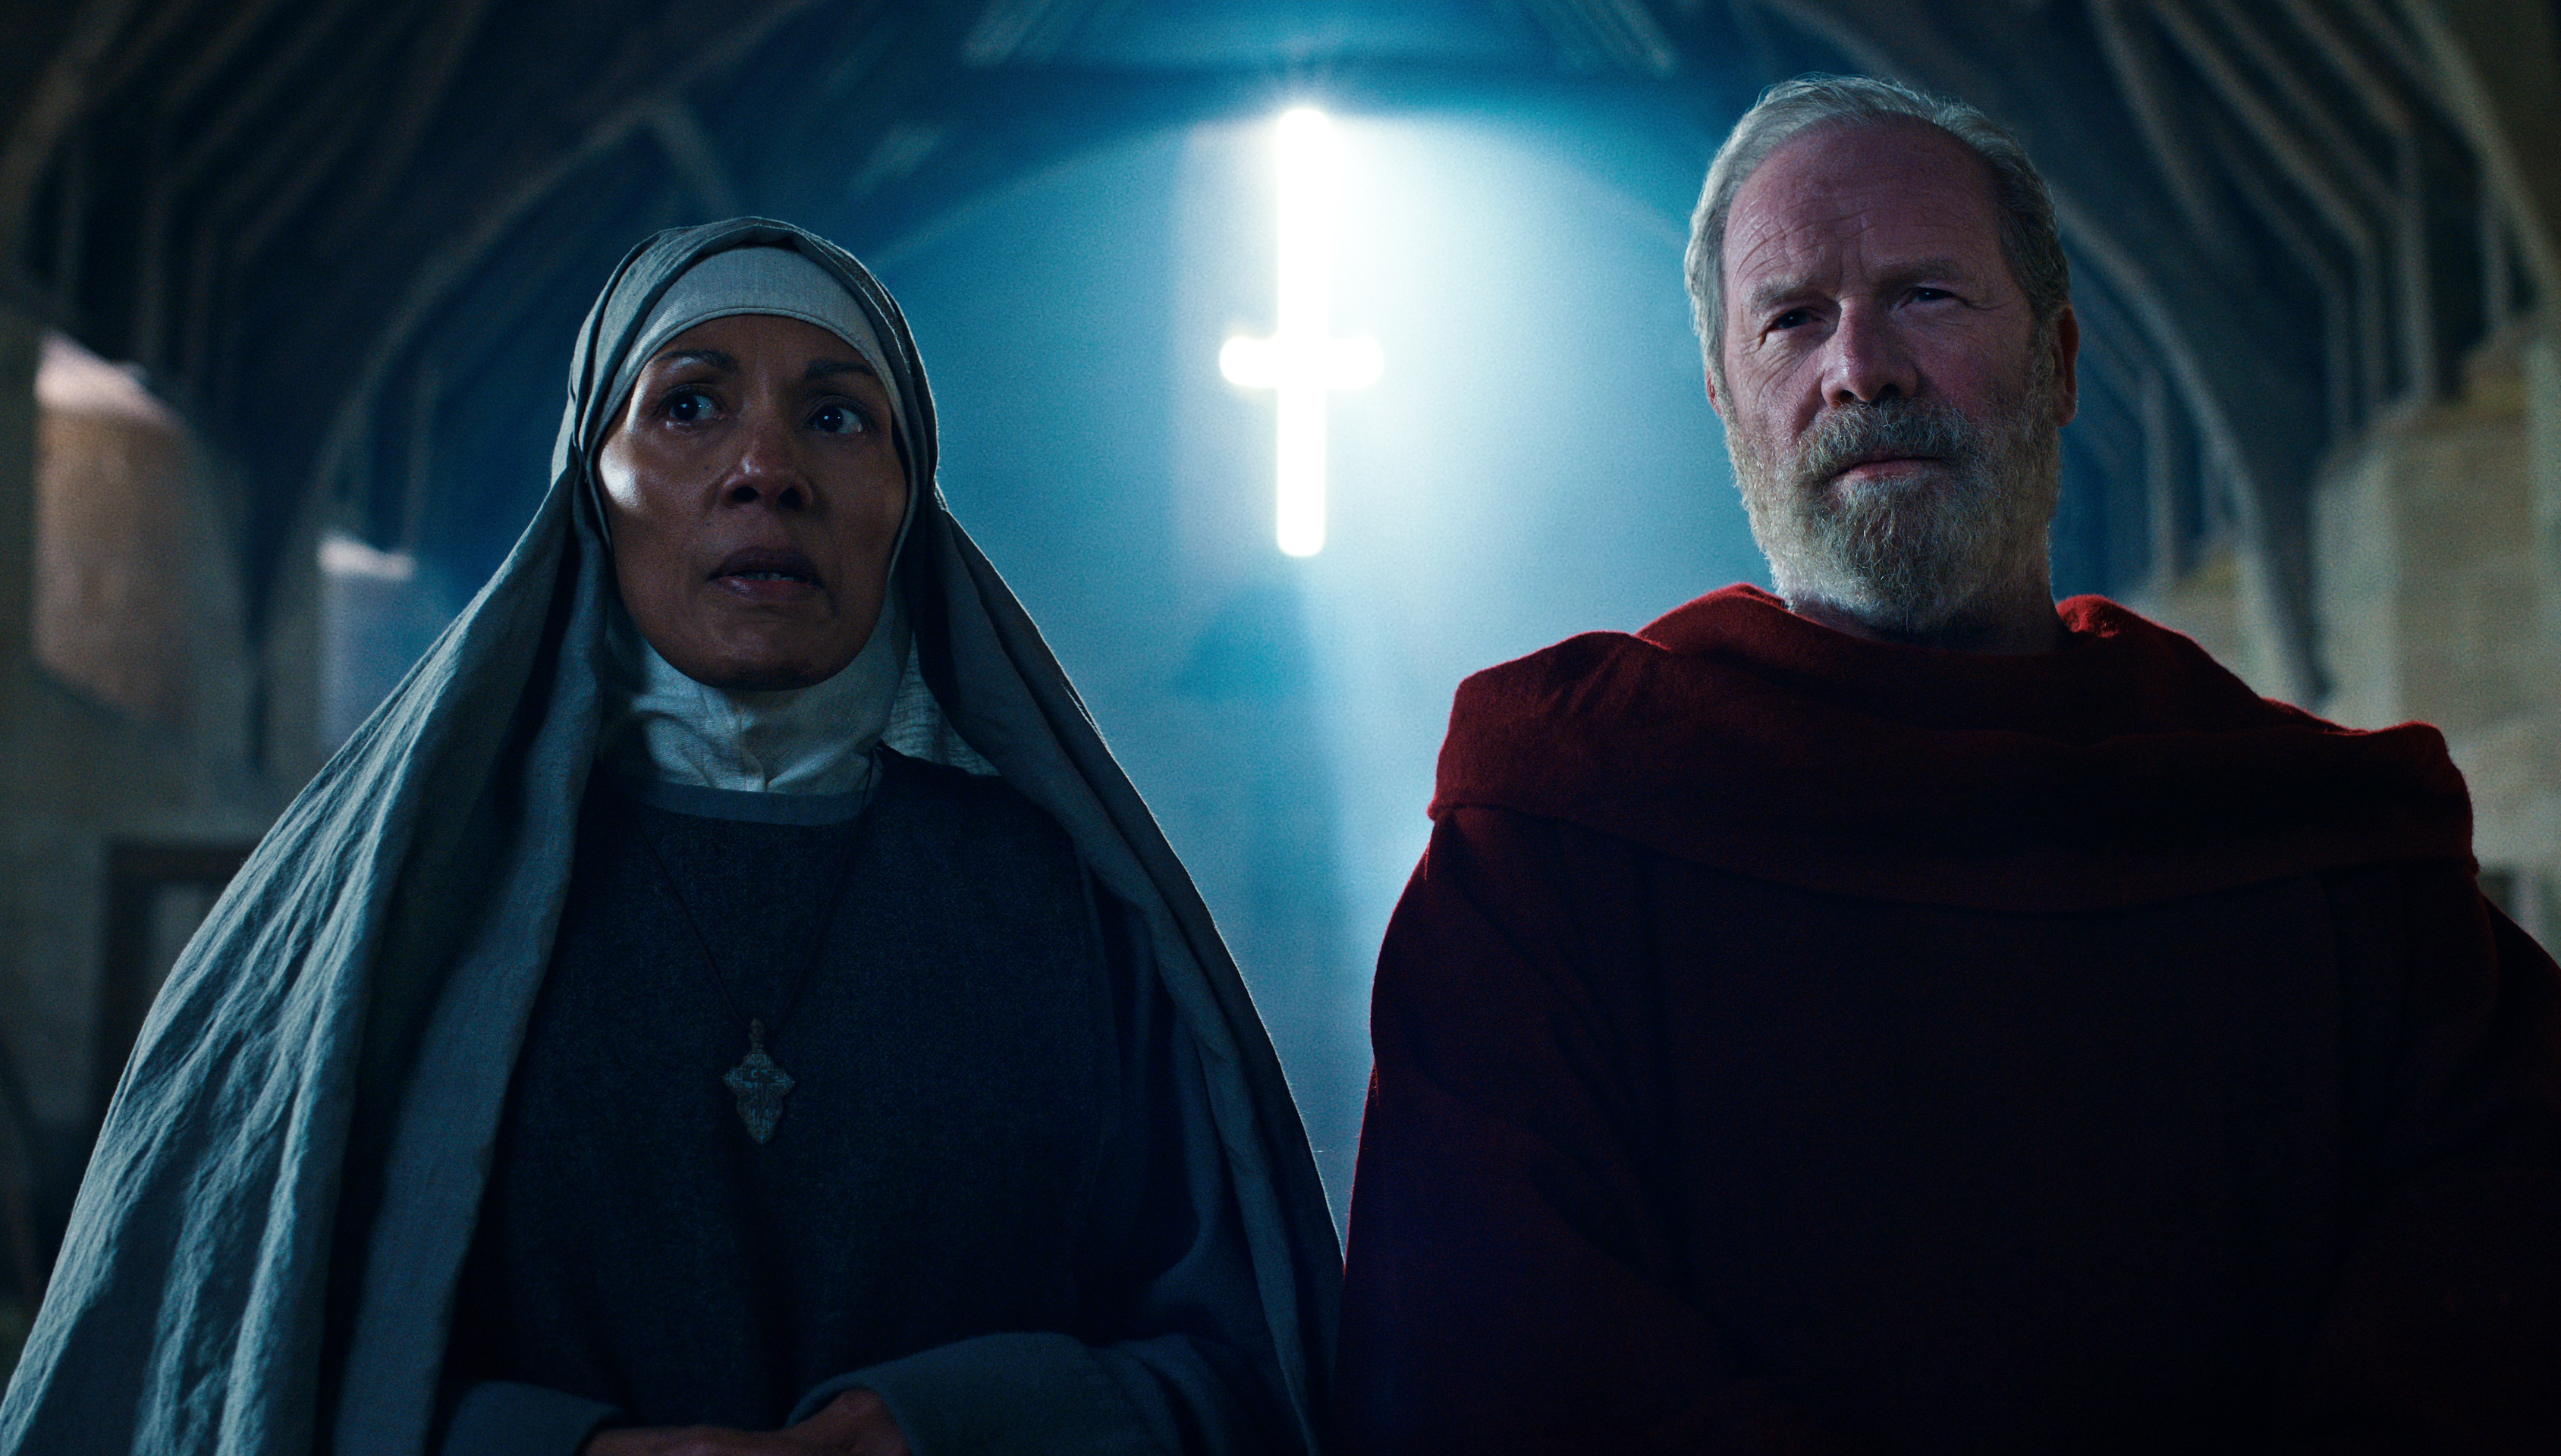 CAROLINE LEE JOHNSON as ABBESS NORA and PETER MULLAN as FATHER CARDEN